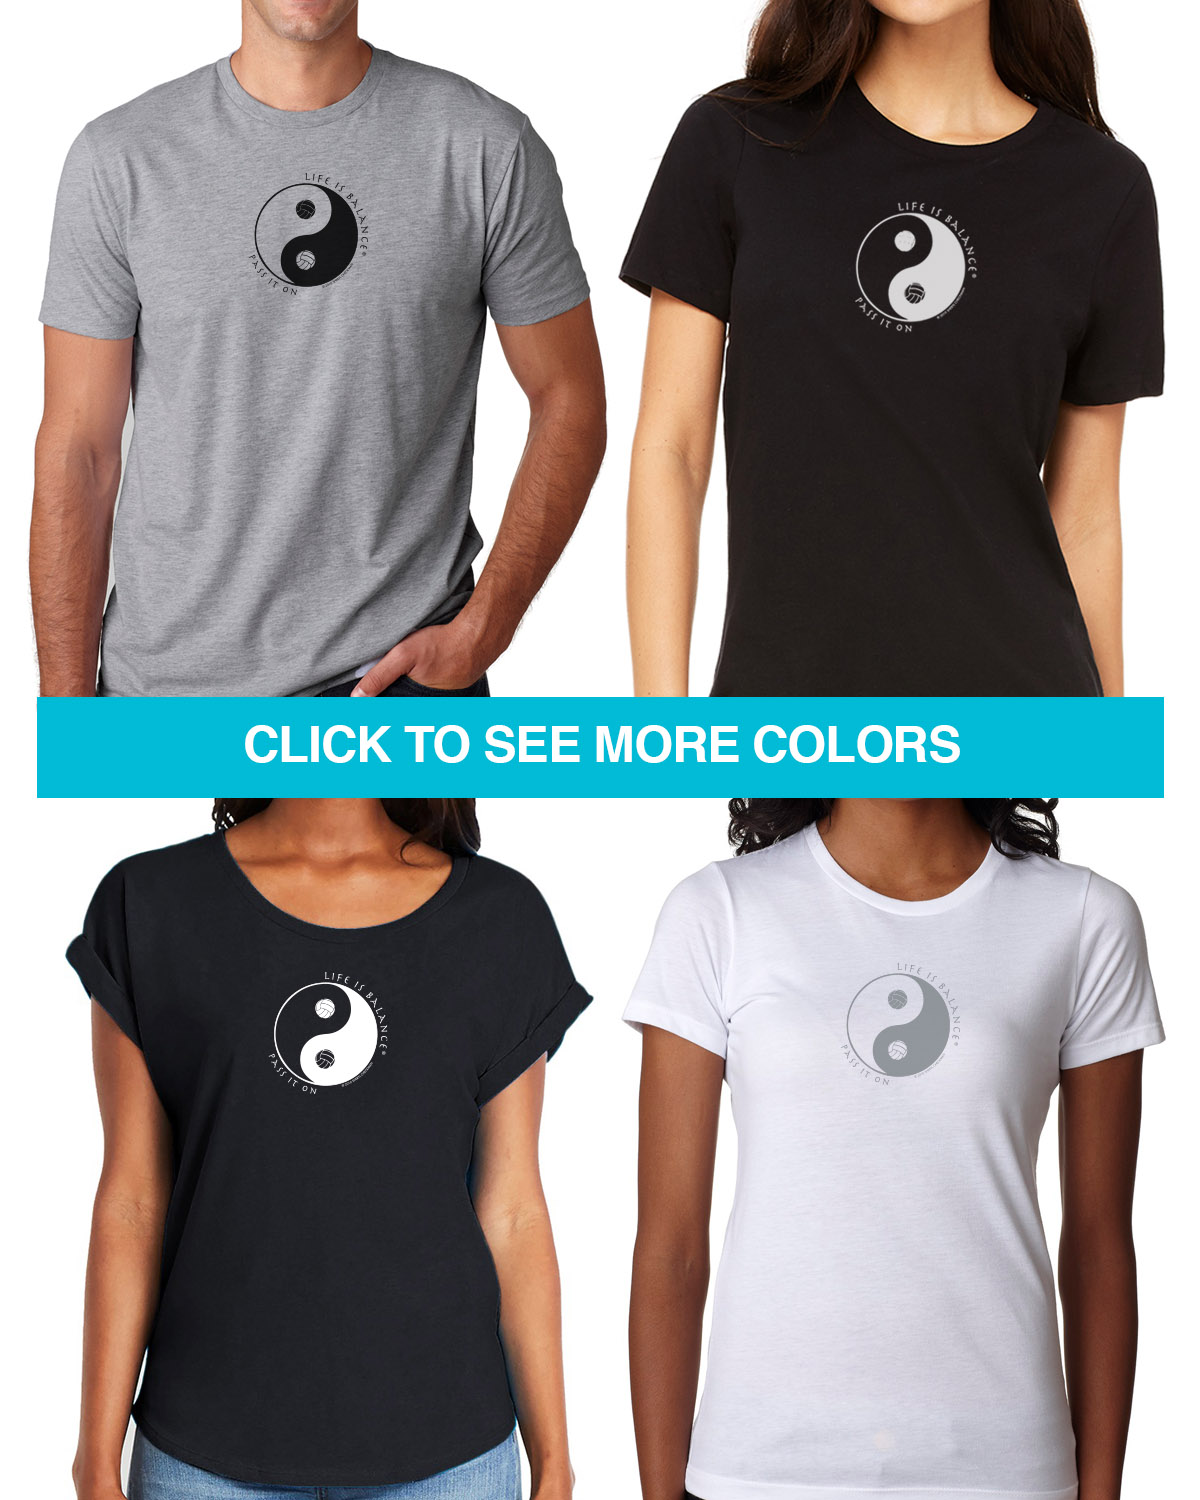 Volleyball Tees for Men & Women